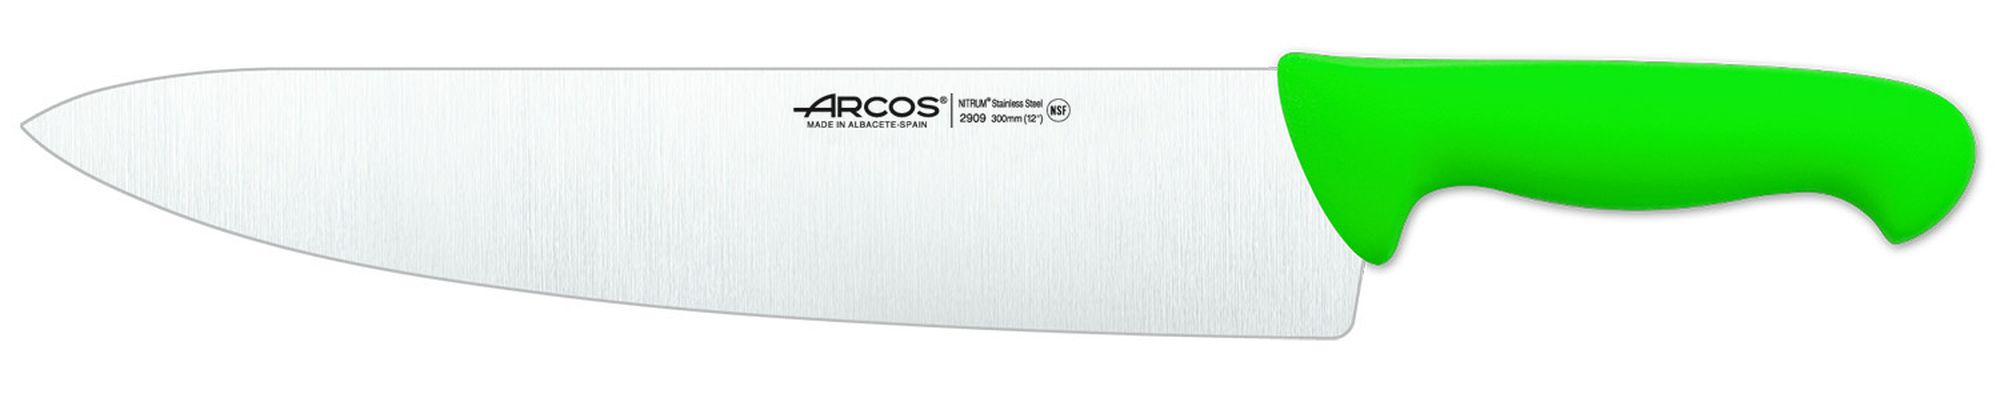 Chef'S Knife Arcos ref.: 290921